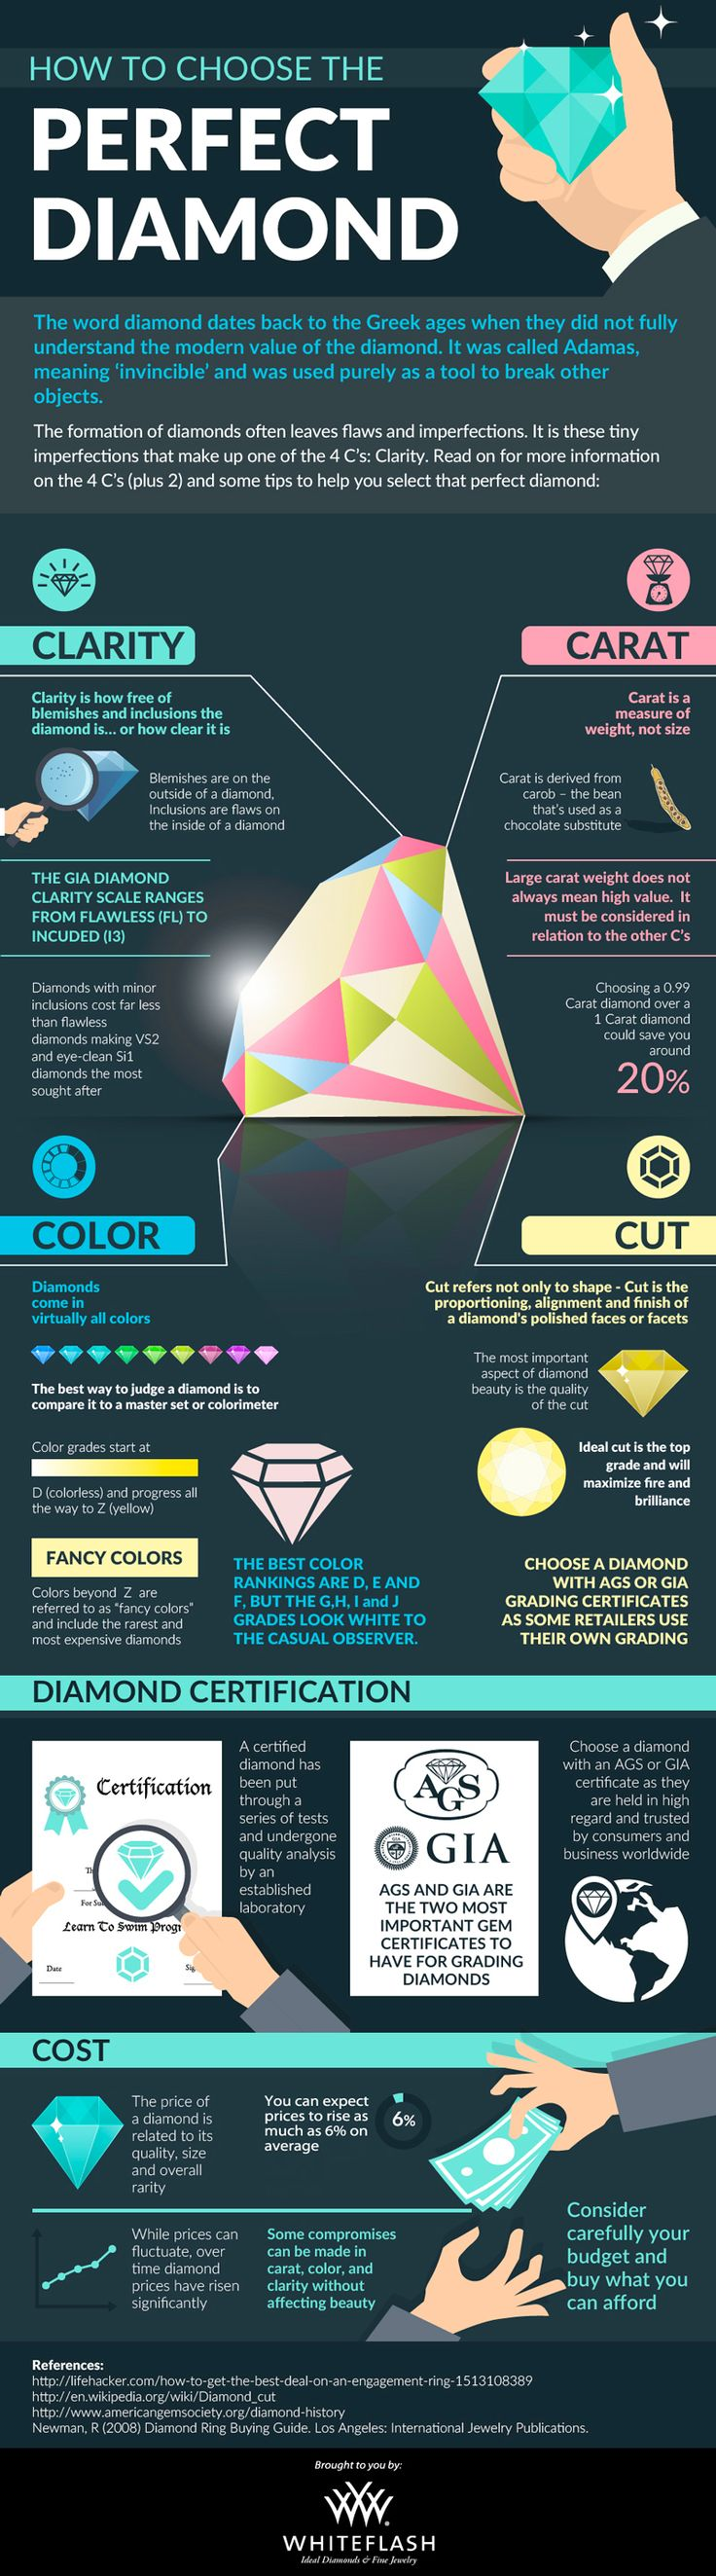 grading diamond weight carat color